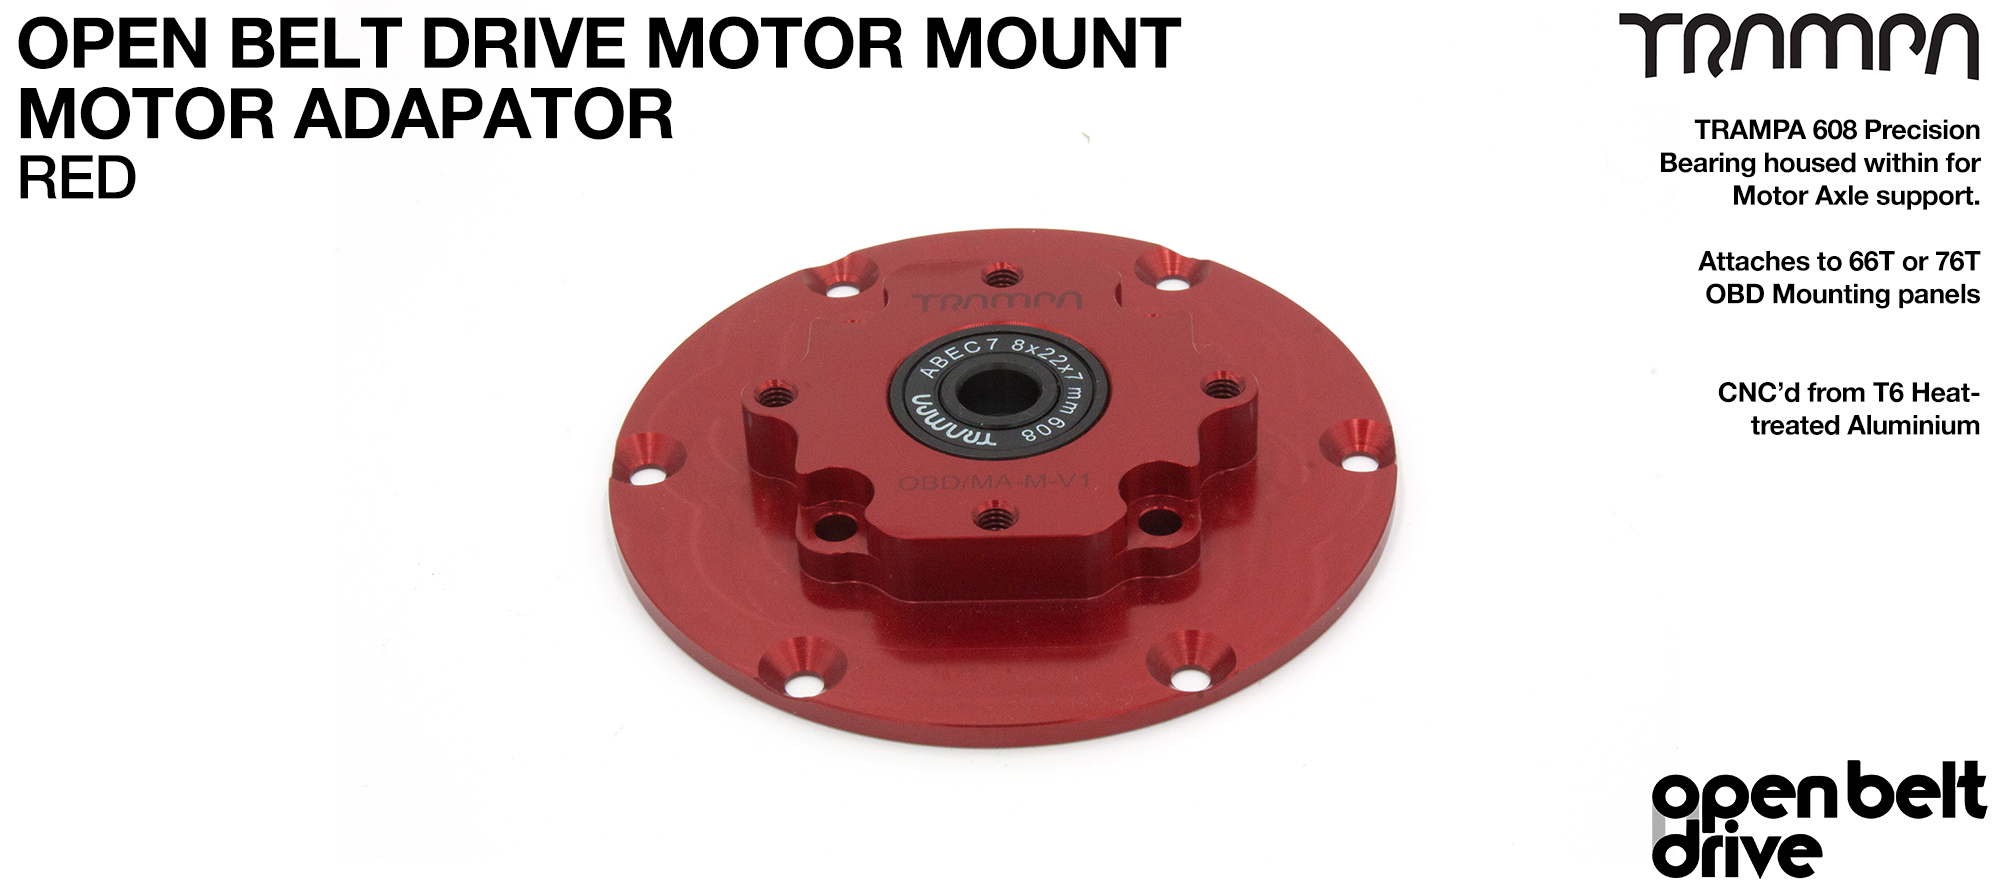 RED OBD Motor Adaptor with Housed Bearing